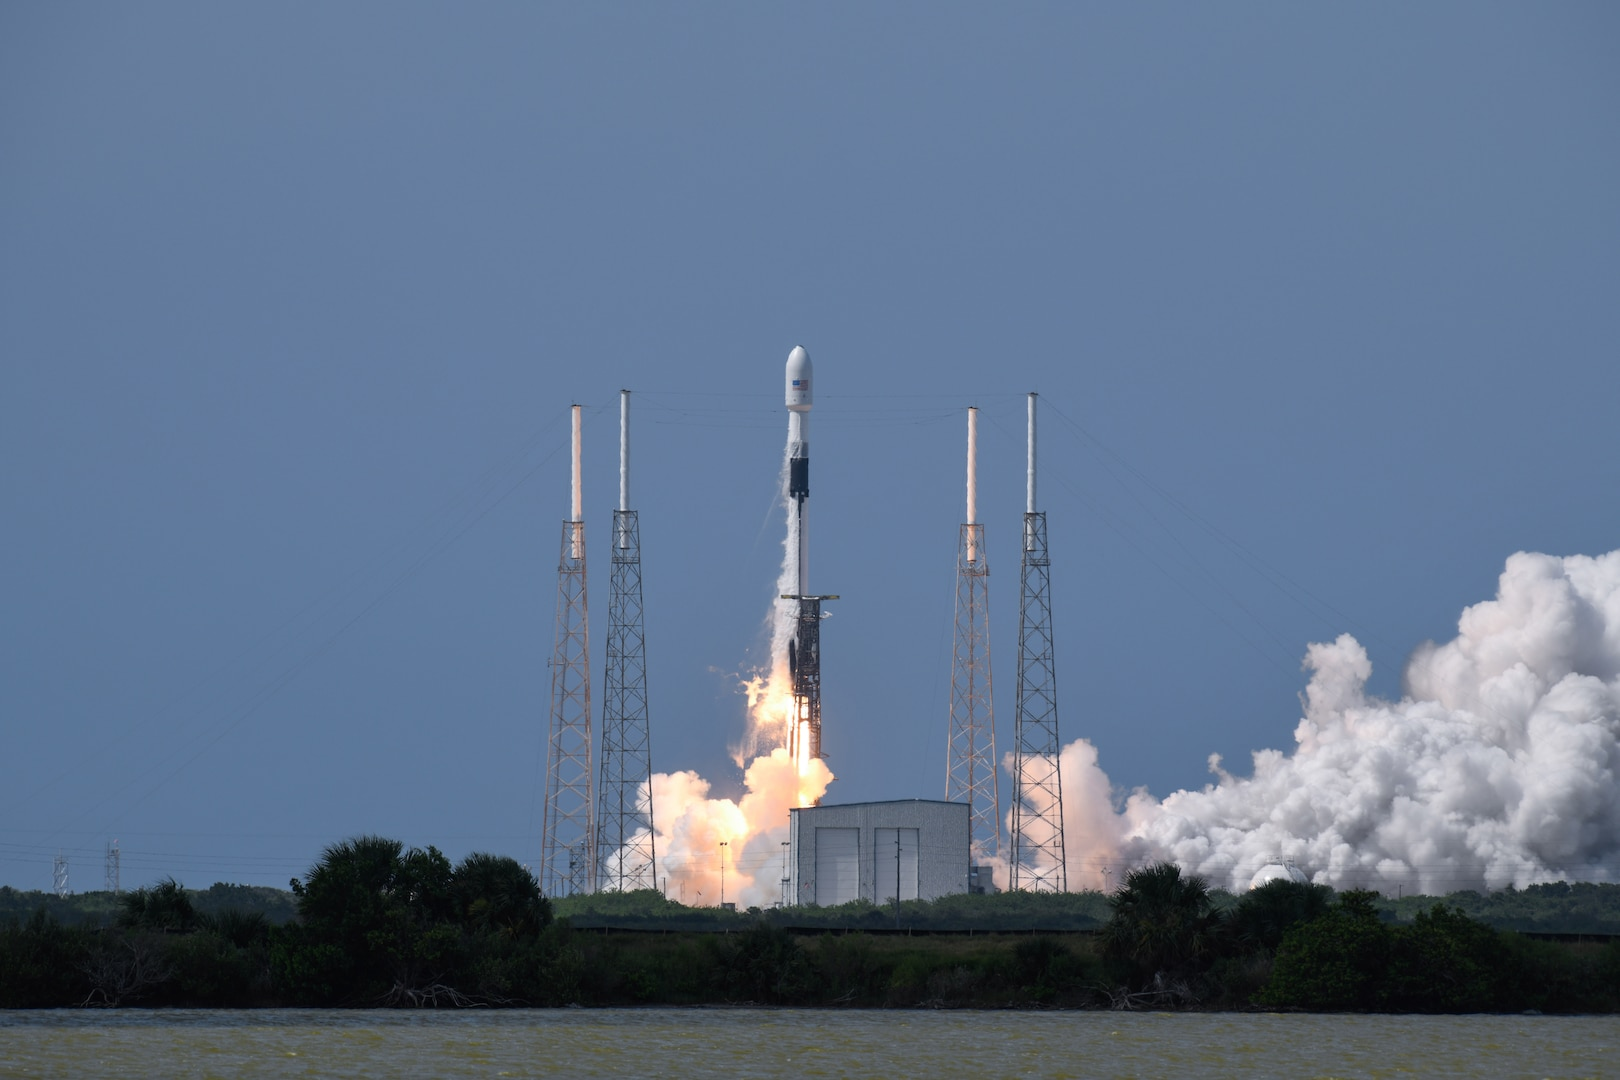 Photo of a rocket launching from a launch pad